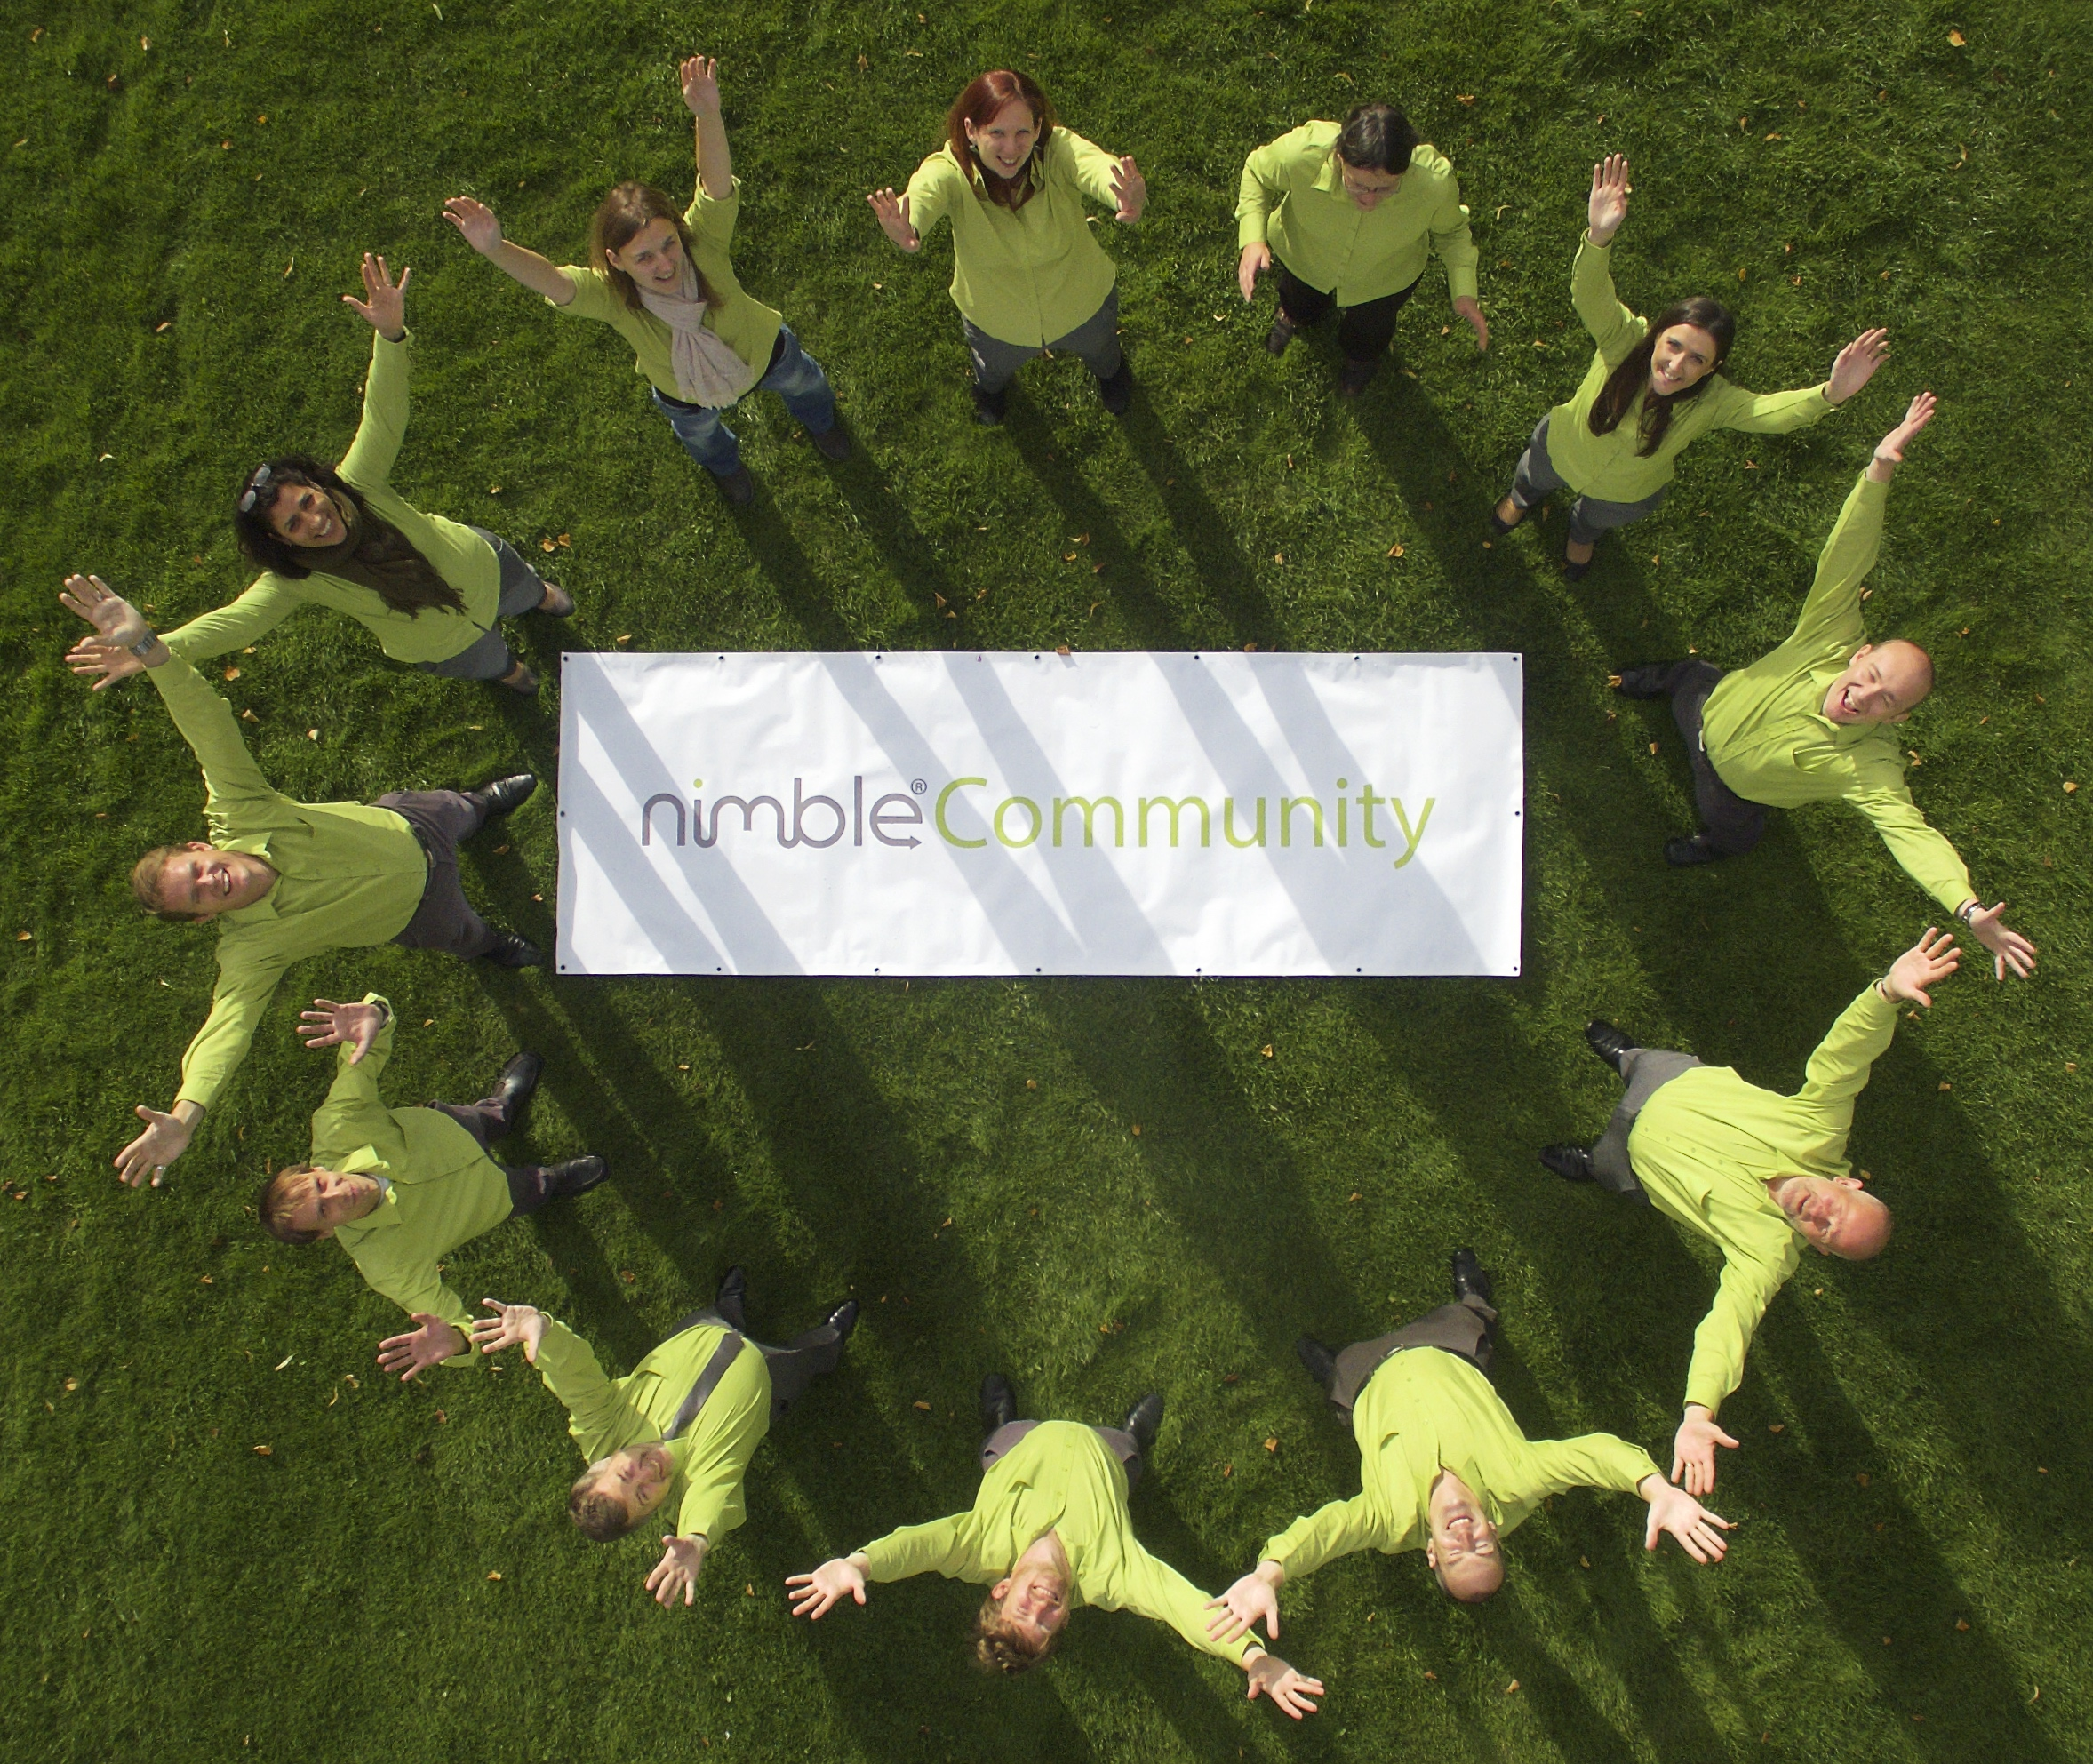 Date Announced for Nimble Community Day 2016!